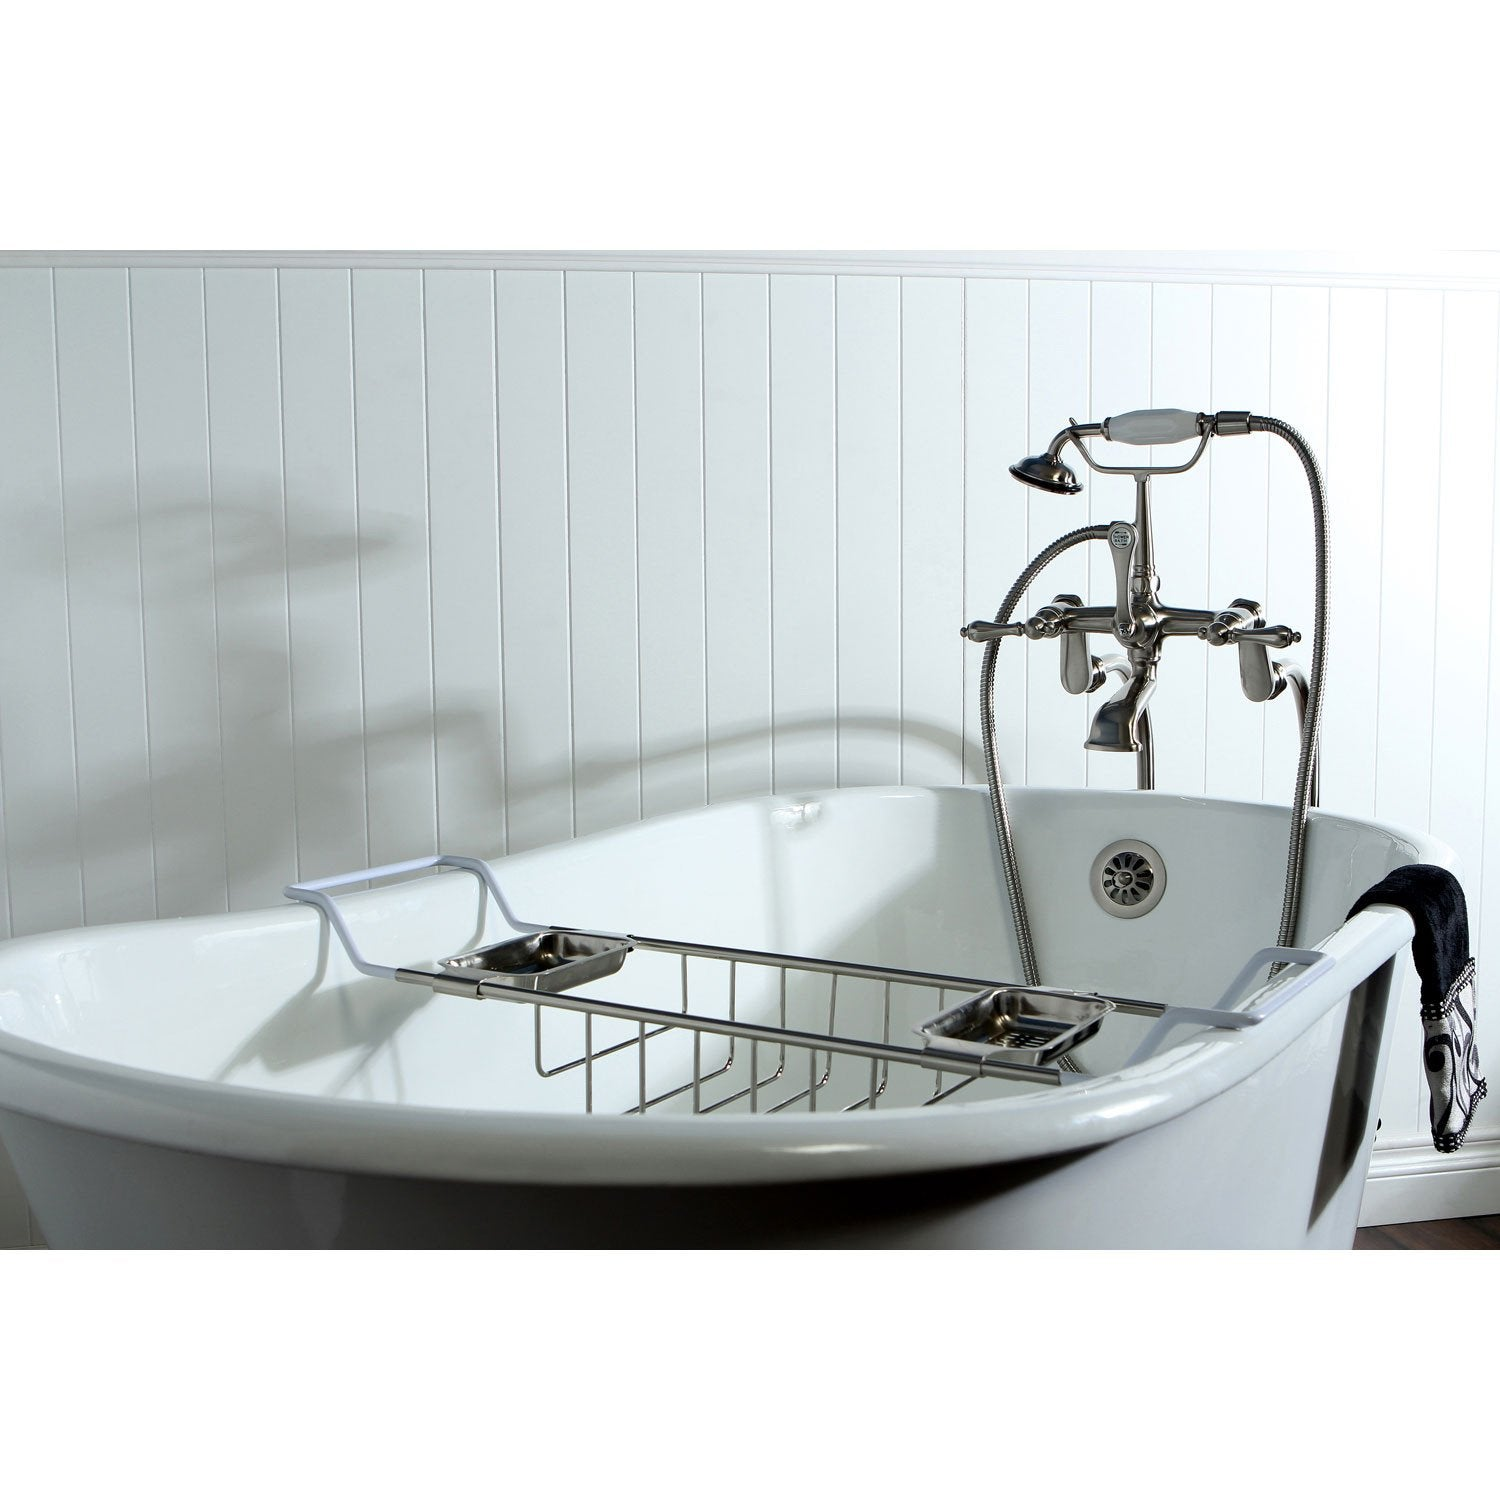 "53"" Clawfoot Tub with Freestanding Satin Nickel Faucet & Hardware Package CTP31"